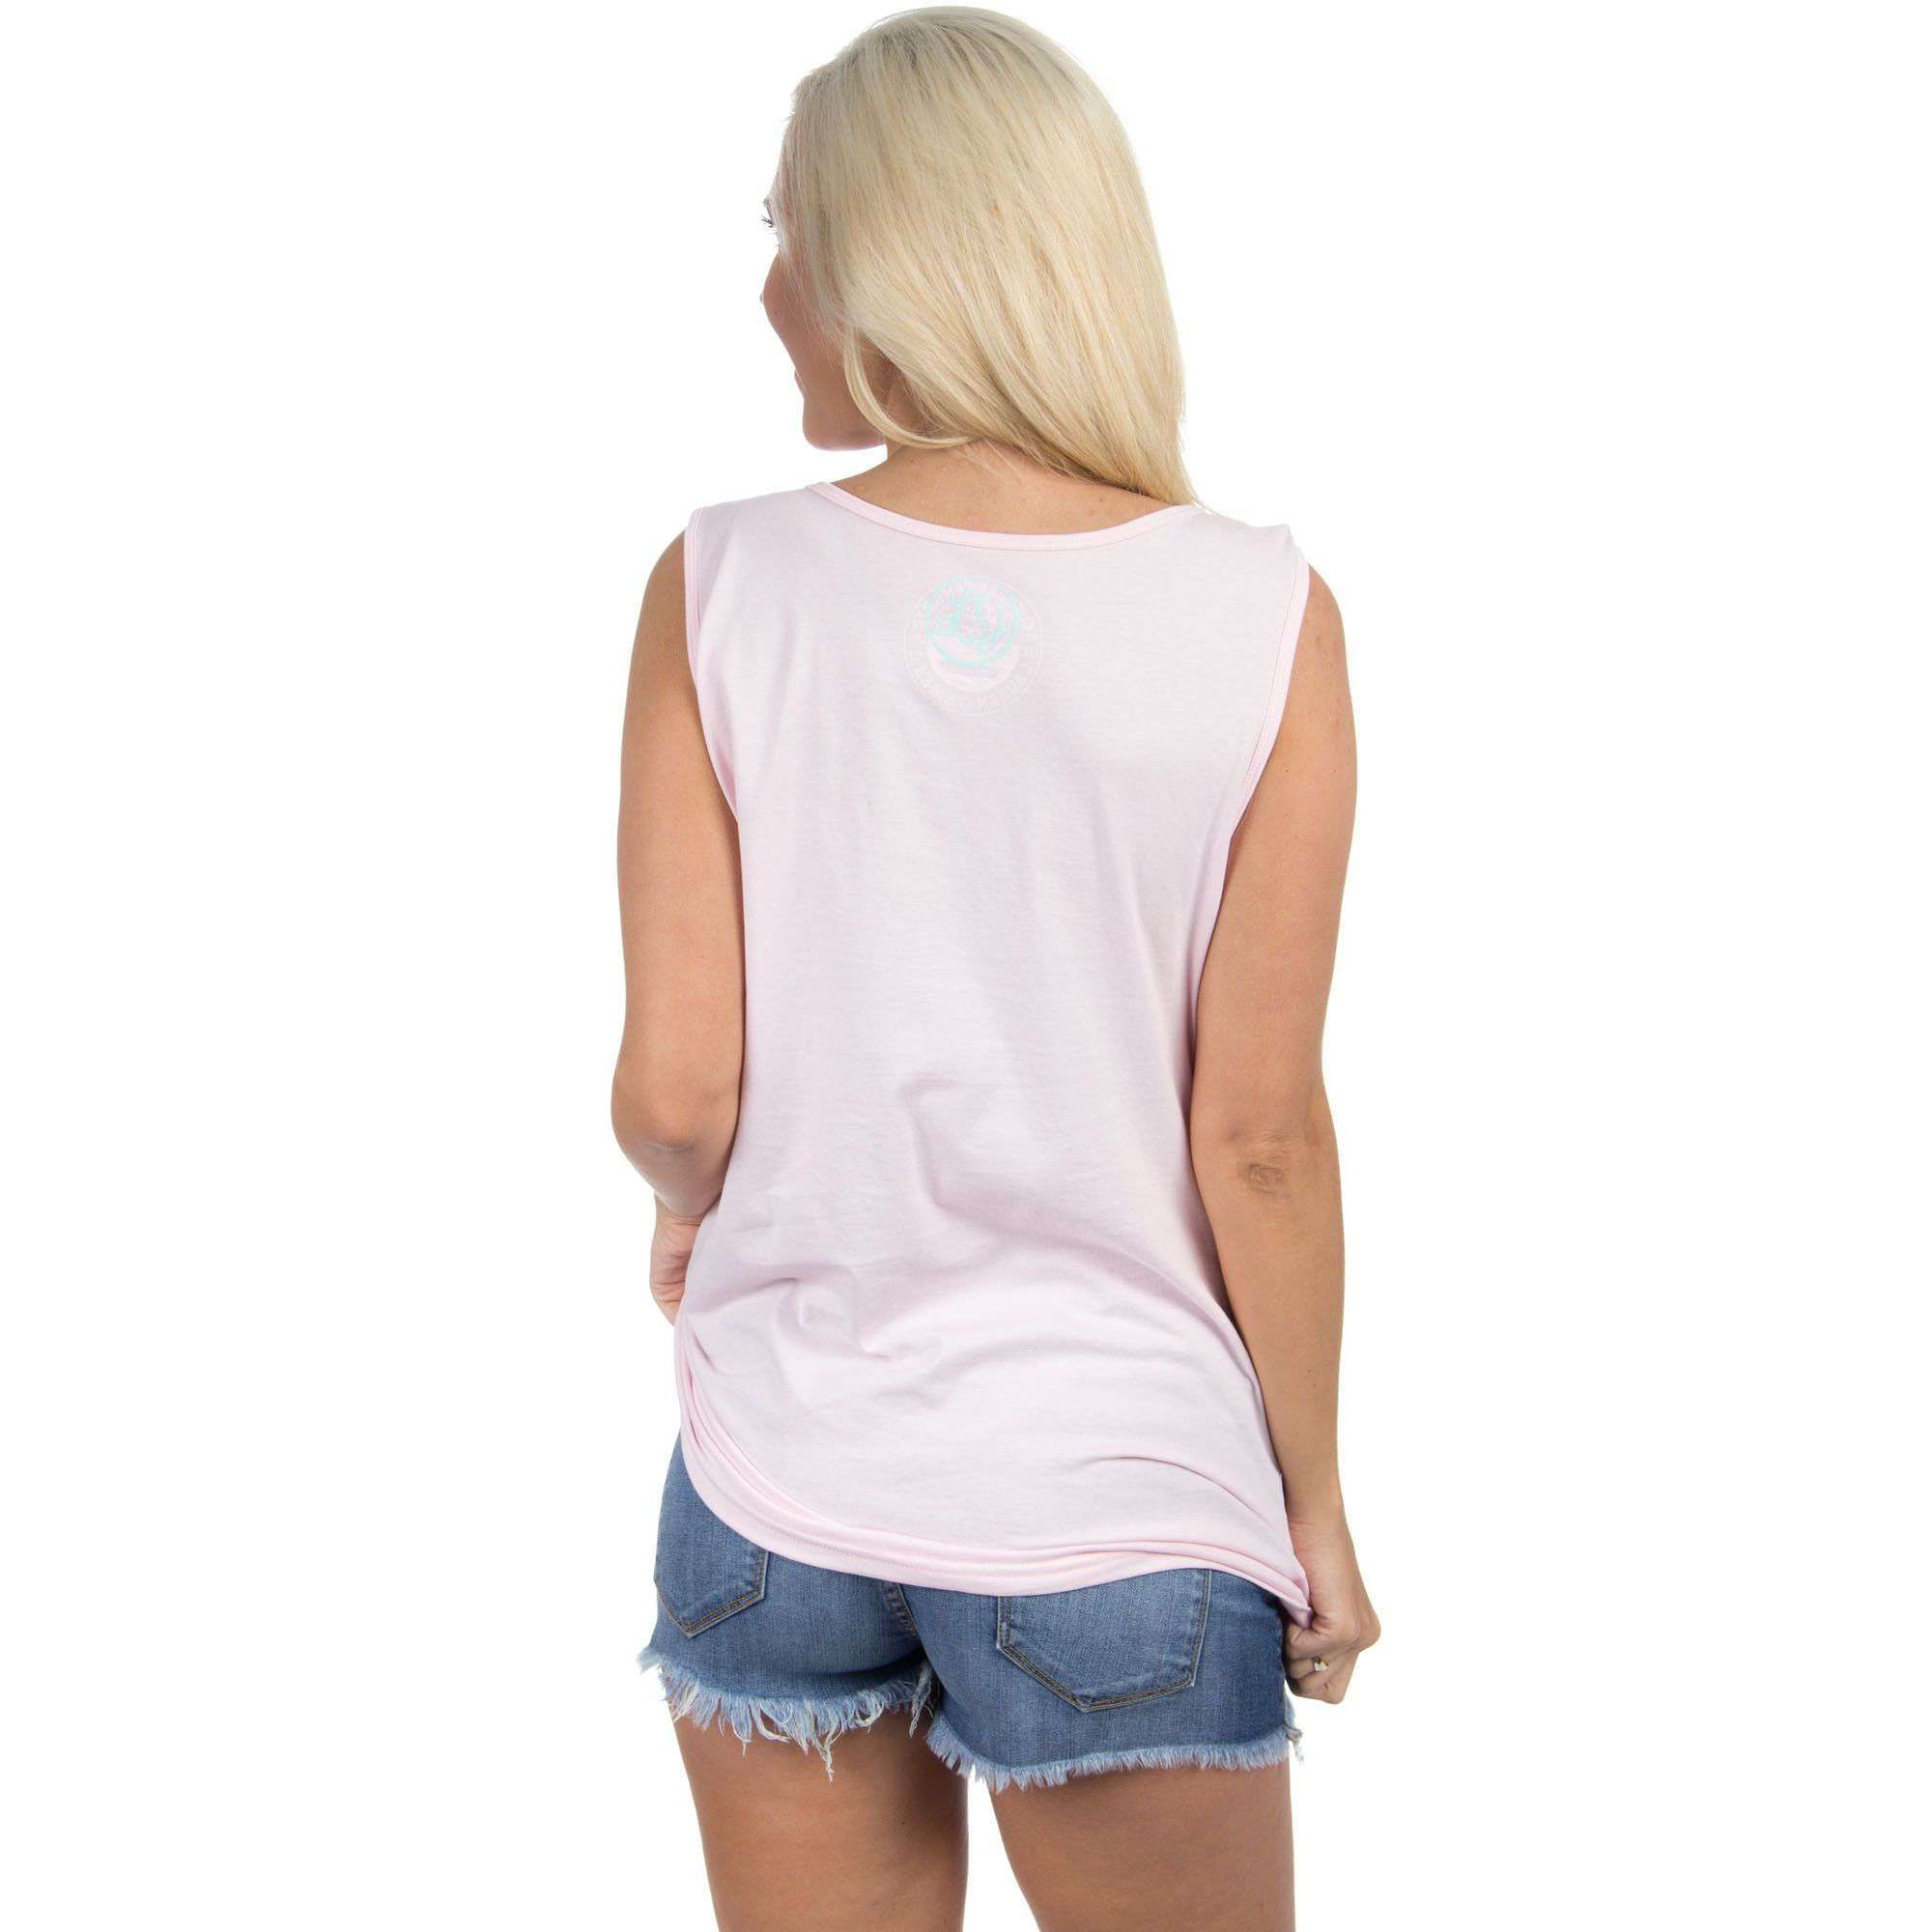 Women's Tee Shirts - Virginia Lovely State Pocket Tank Top In Pink By Lauren James